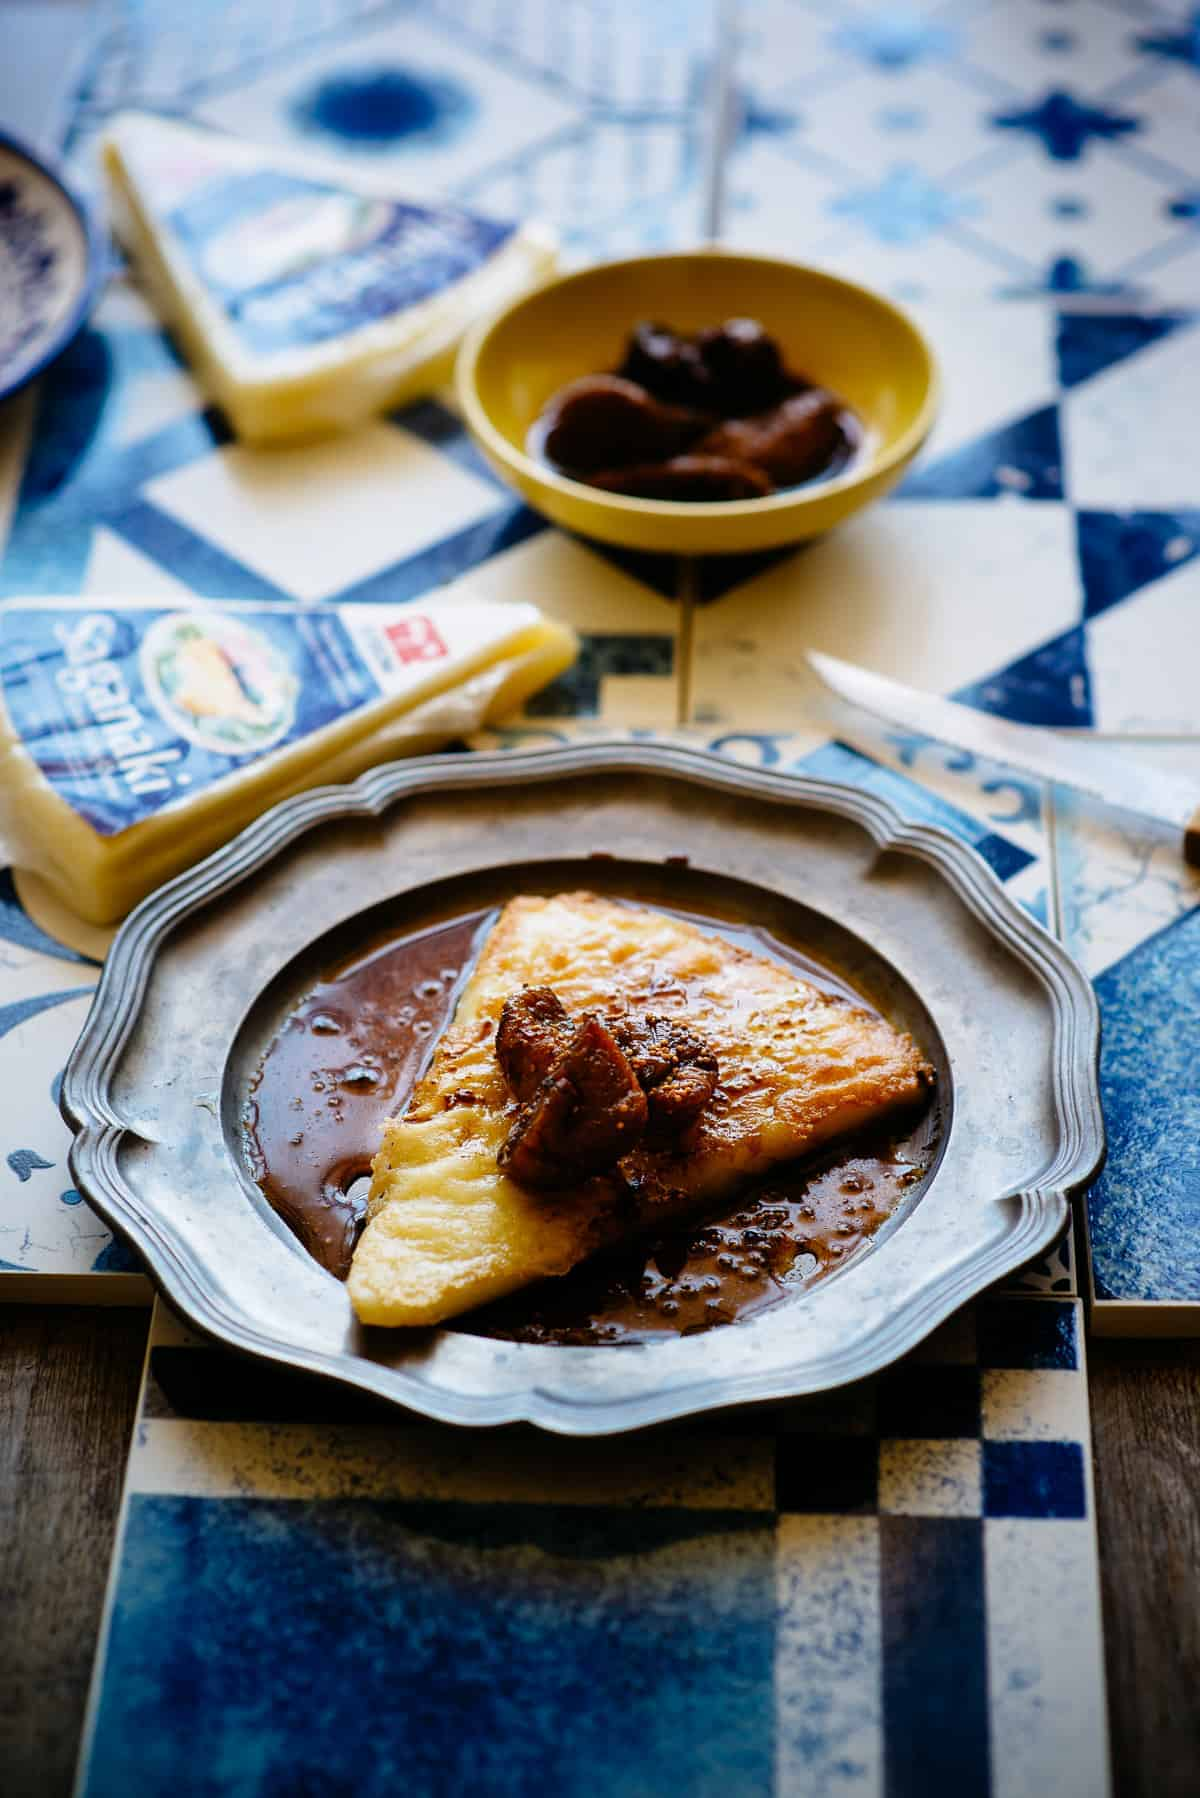 fried Greek saganaki cheese with figs and balsamic